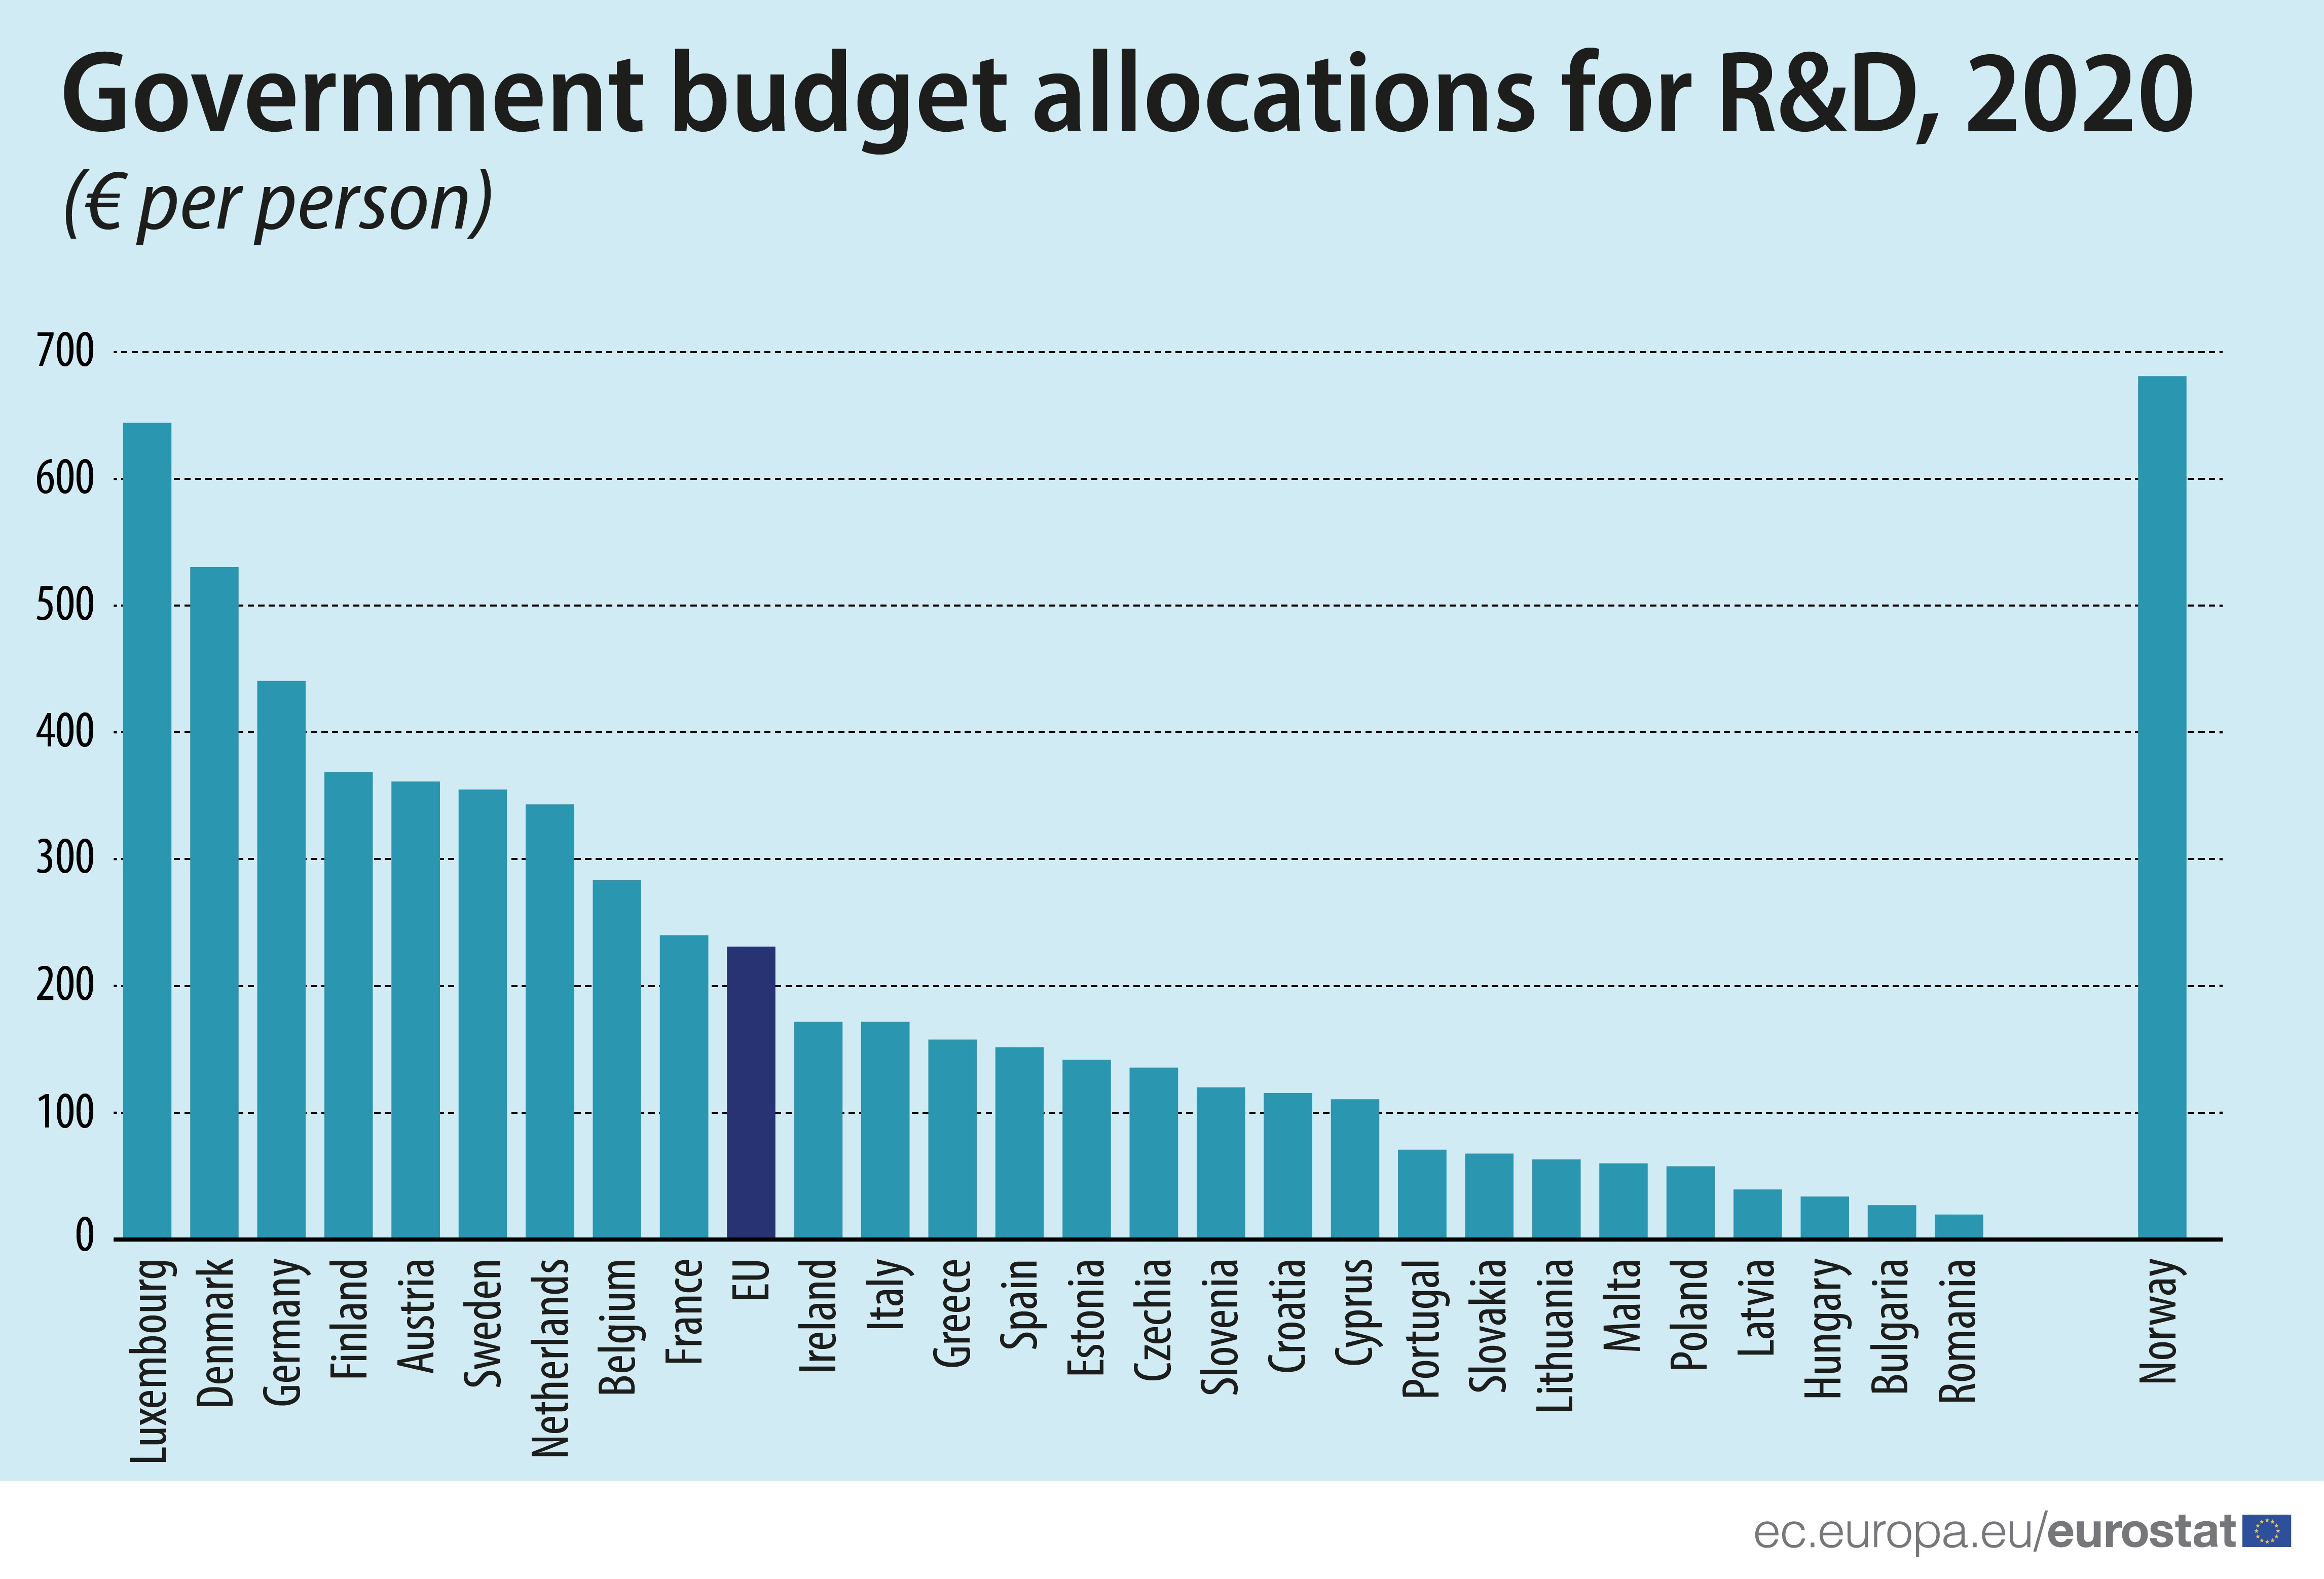 Bar chart: Government budget allocations for R&D, EU Member States and EFTA countries, by € per person, 2020 data